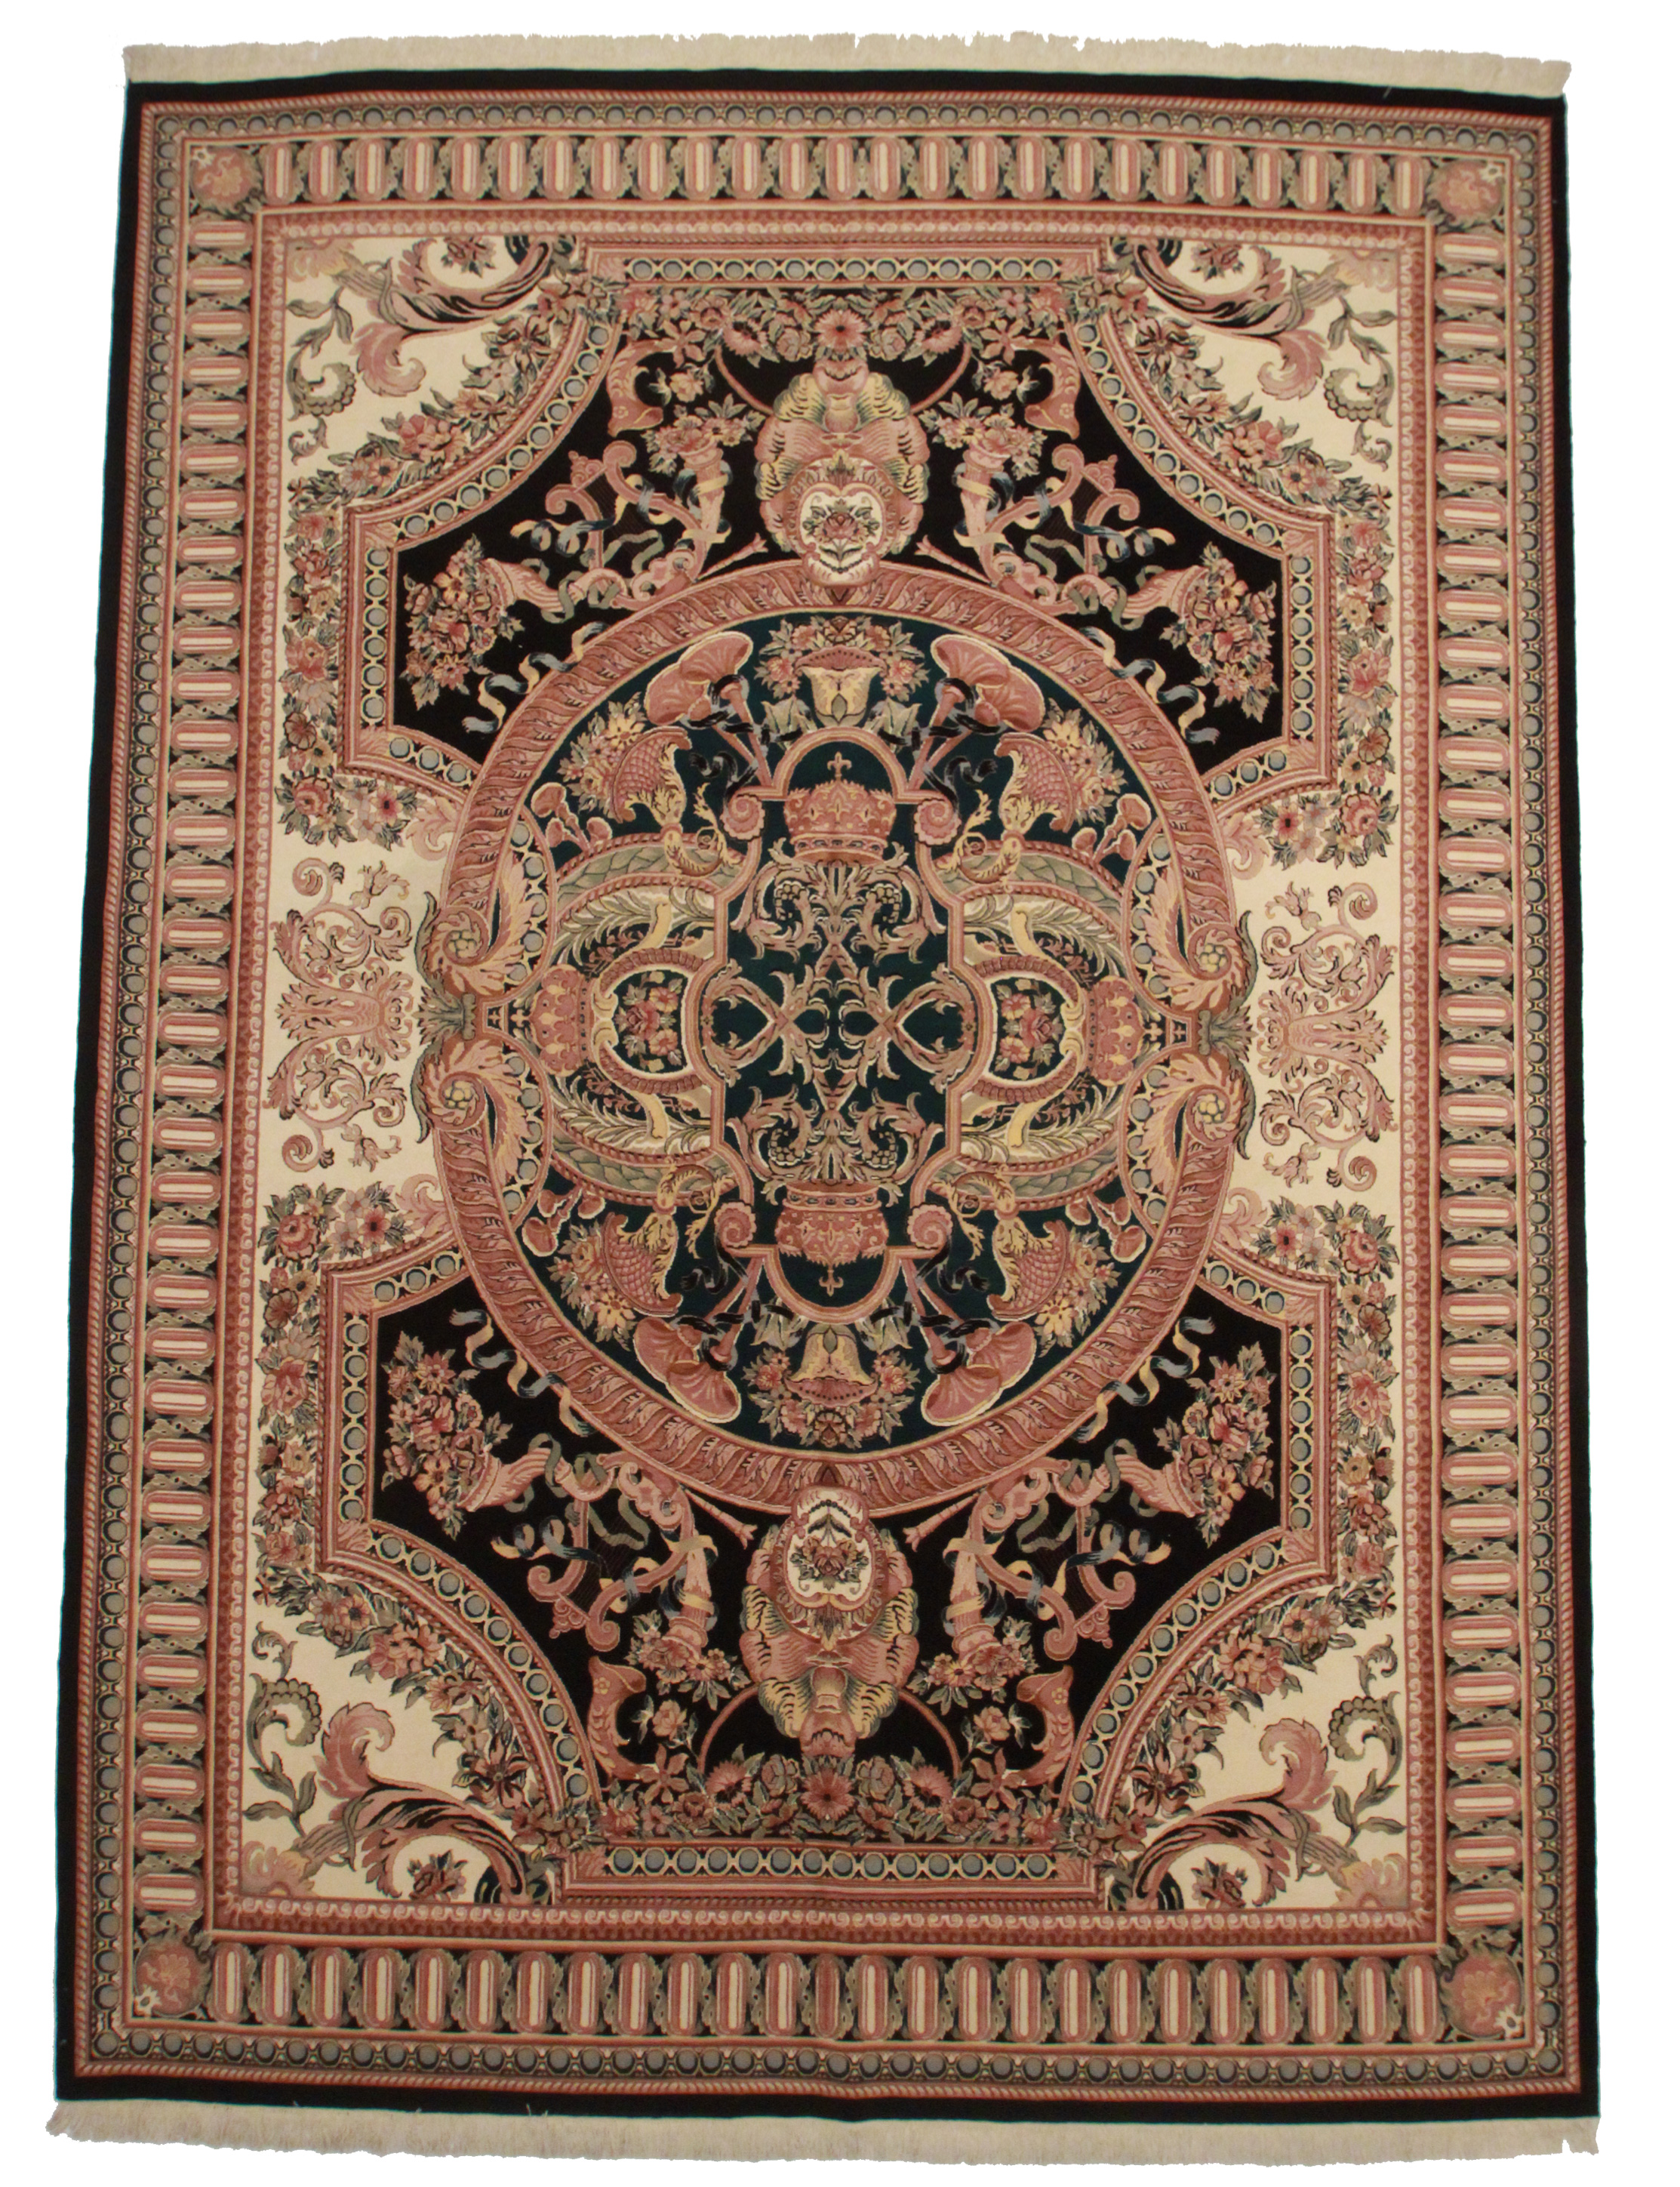 10 1 14 5 Hand Knotted Wool Pakistani Rug With French Design